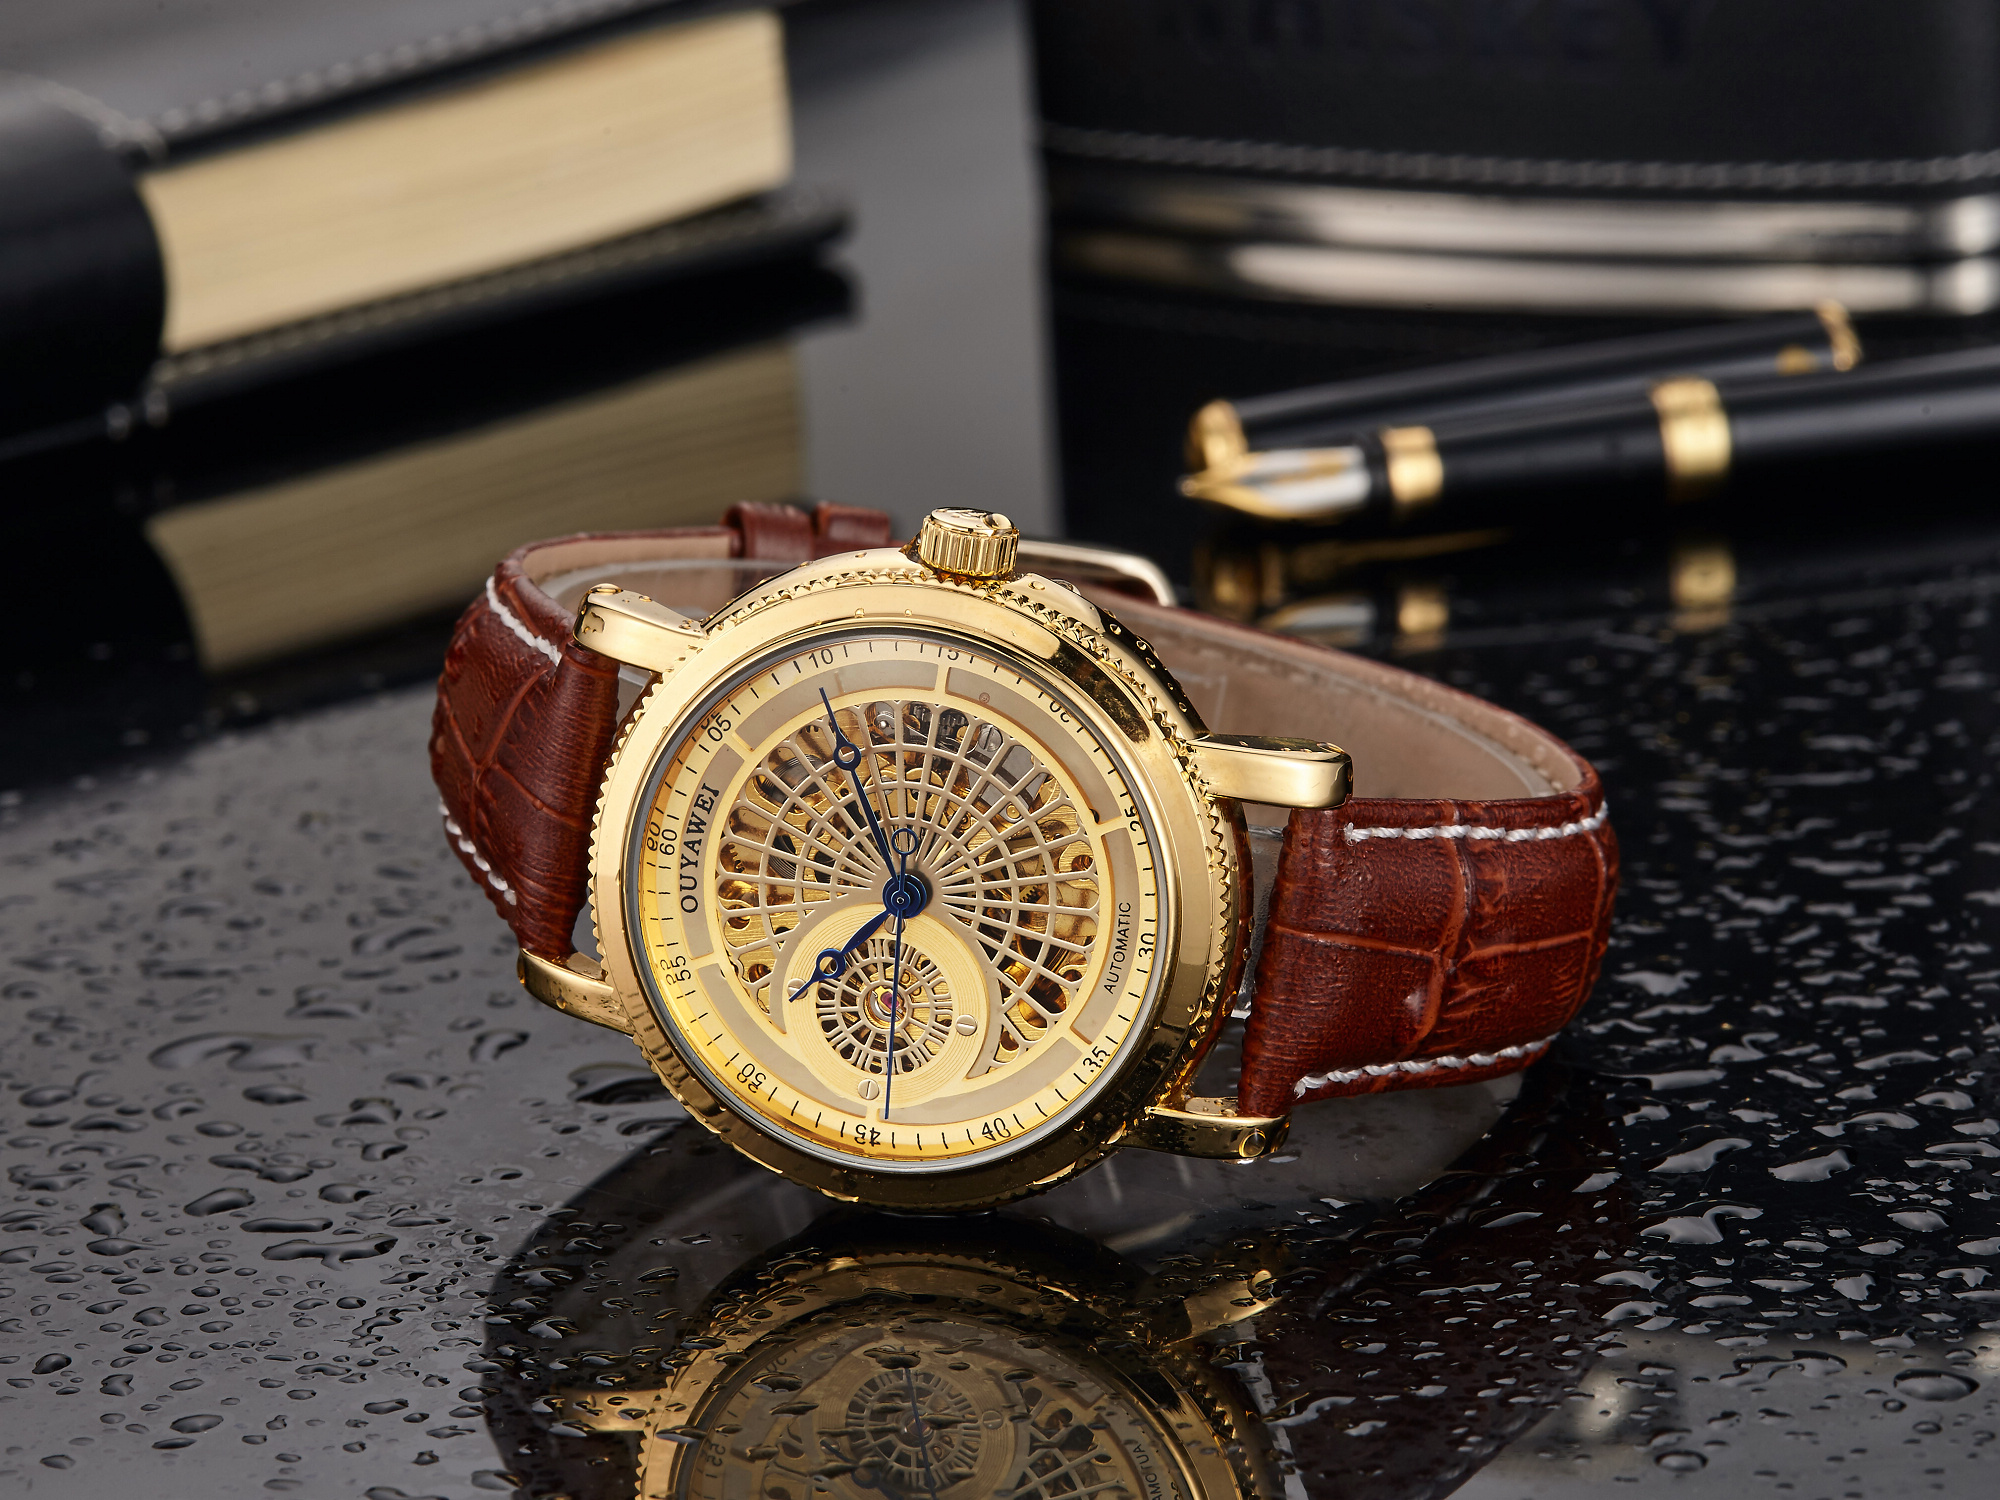 Hd423ebd16a0c420f98d100a93bc3b696O Mechanical Gold Watch Luxury Brand Self-winding